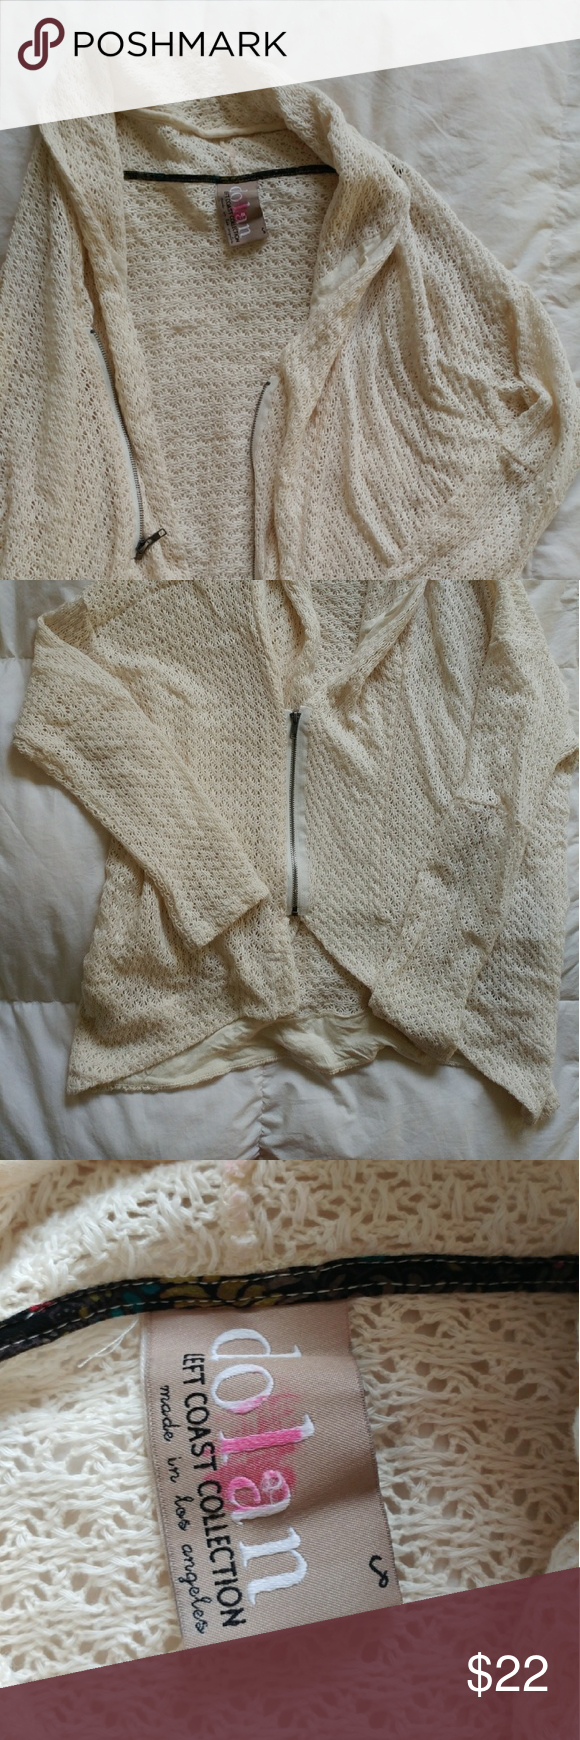 Dolan Cream Lacy Sweater Lacy cream sweater by Dolan (LA Left Coast Collection). Has pockets (!) and a zipper, but I often wear it unzipped. Size small, fits loosely in the body. Red mark on tag. Dolan Sweaters